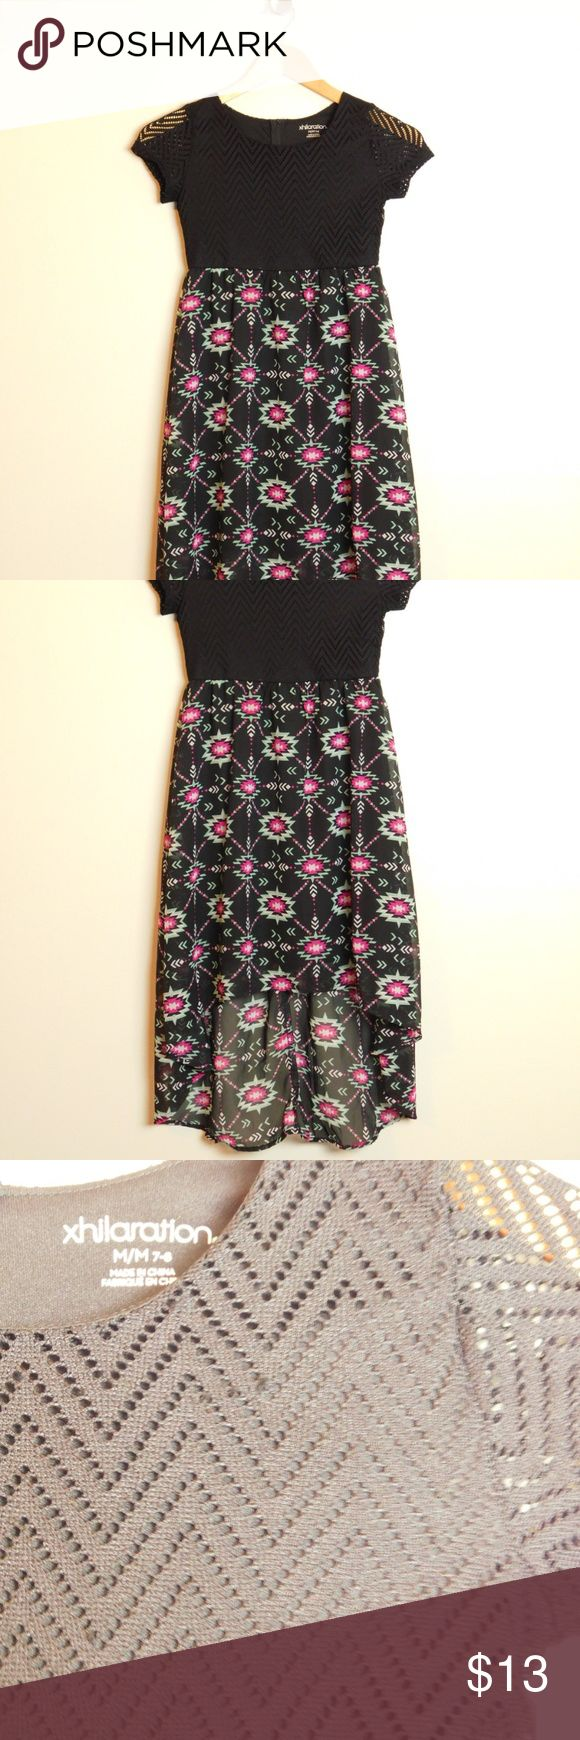 """Girls Chevron Lace High Low Tribal Maxi Dress 7/8 EUC excellent used pre-owned condition, looks new Children's kids size 7/8 Color:    Black Magenta pink mint green white Length in front hem 29"""" Length in back hem 37""""  Scoop neckline Short Sleeves Back zip closure Chevron mesh lace bodice Aztec printed chiffon skirt High low hem long in the back Fully lined  Fabric & Care 100% polyester Machine washable Xhilaration Dresses Casual"""